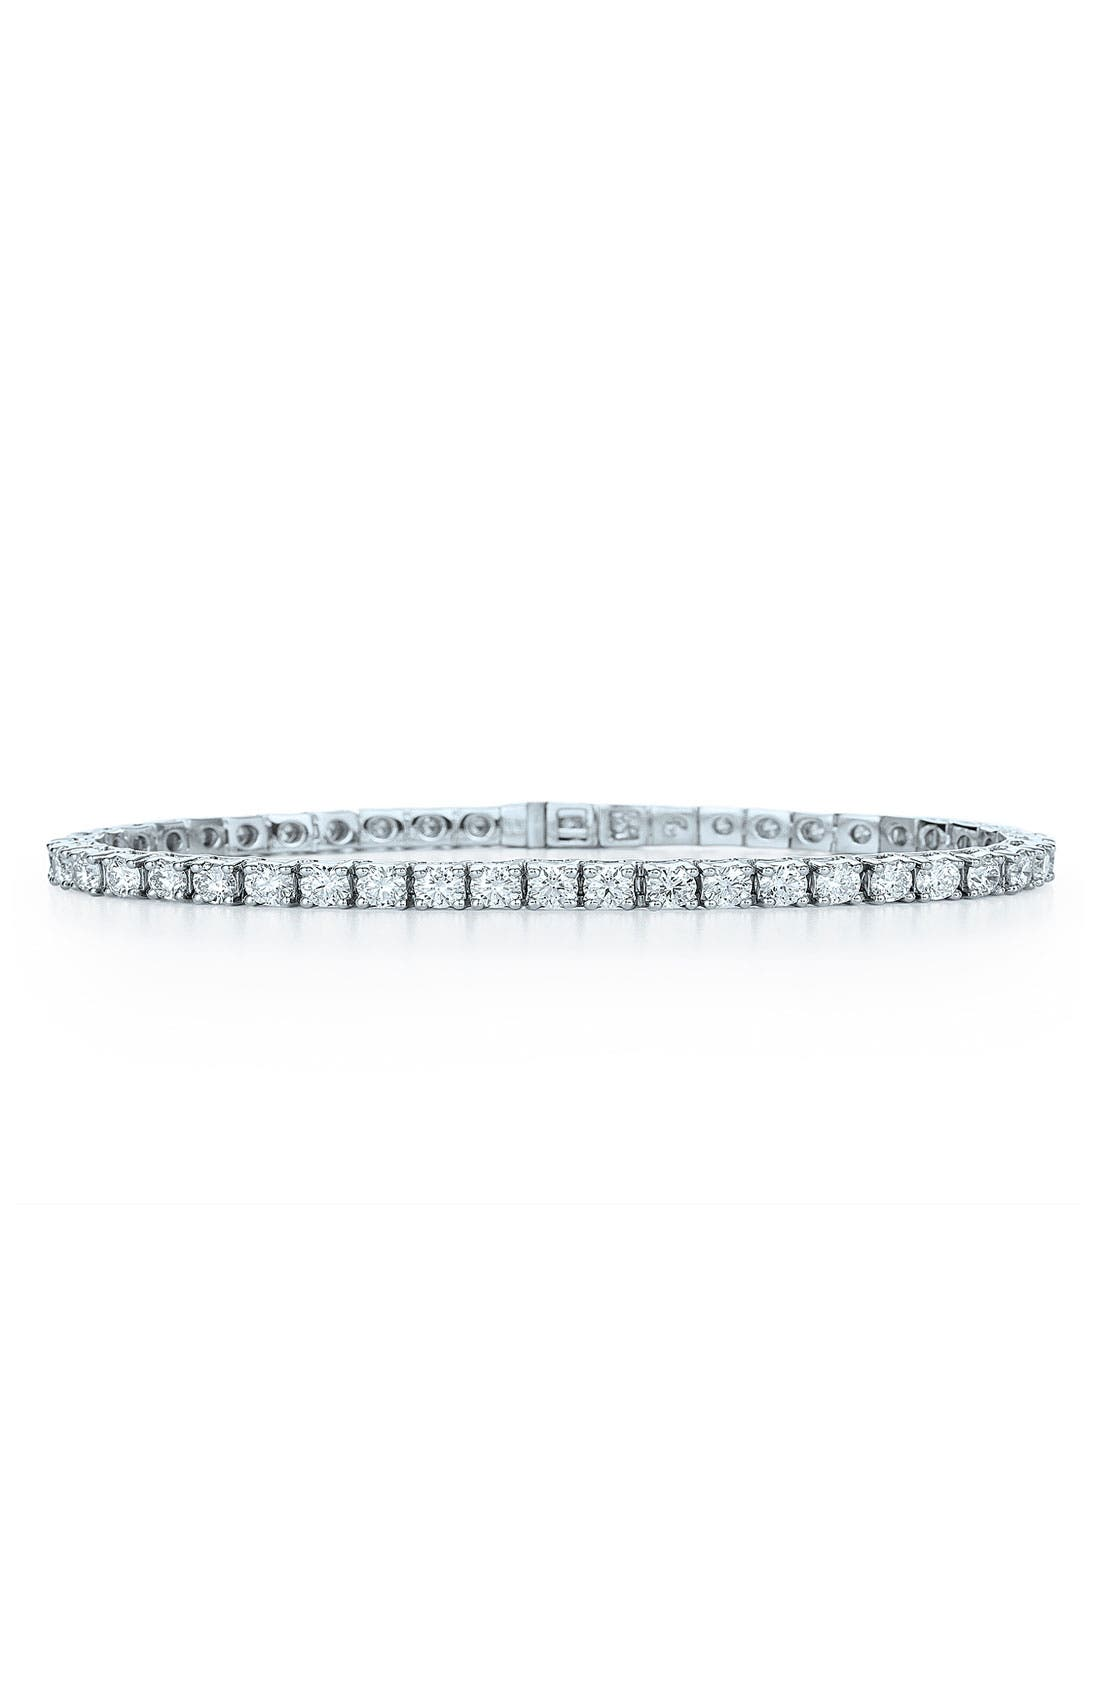 Main Image - Kwiat 'Riviera' Diamond Tennis Bracelet